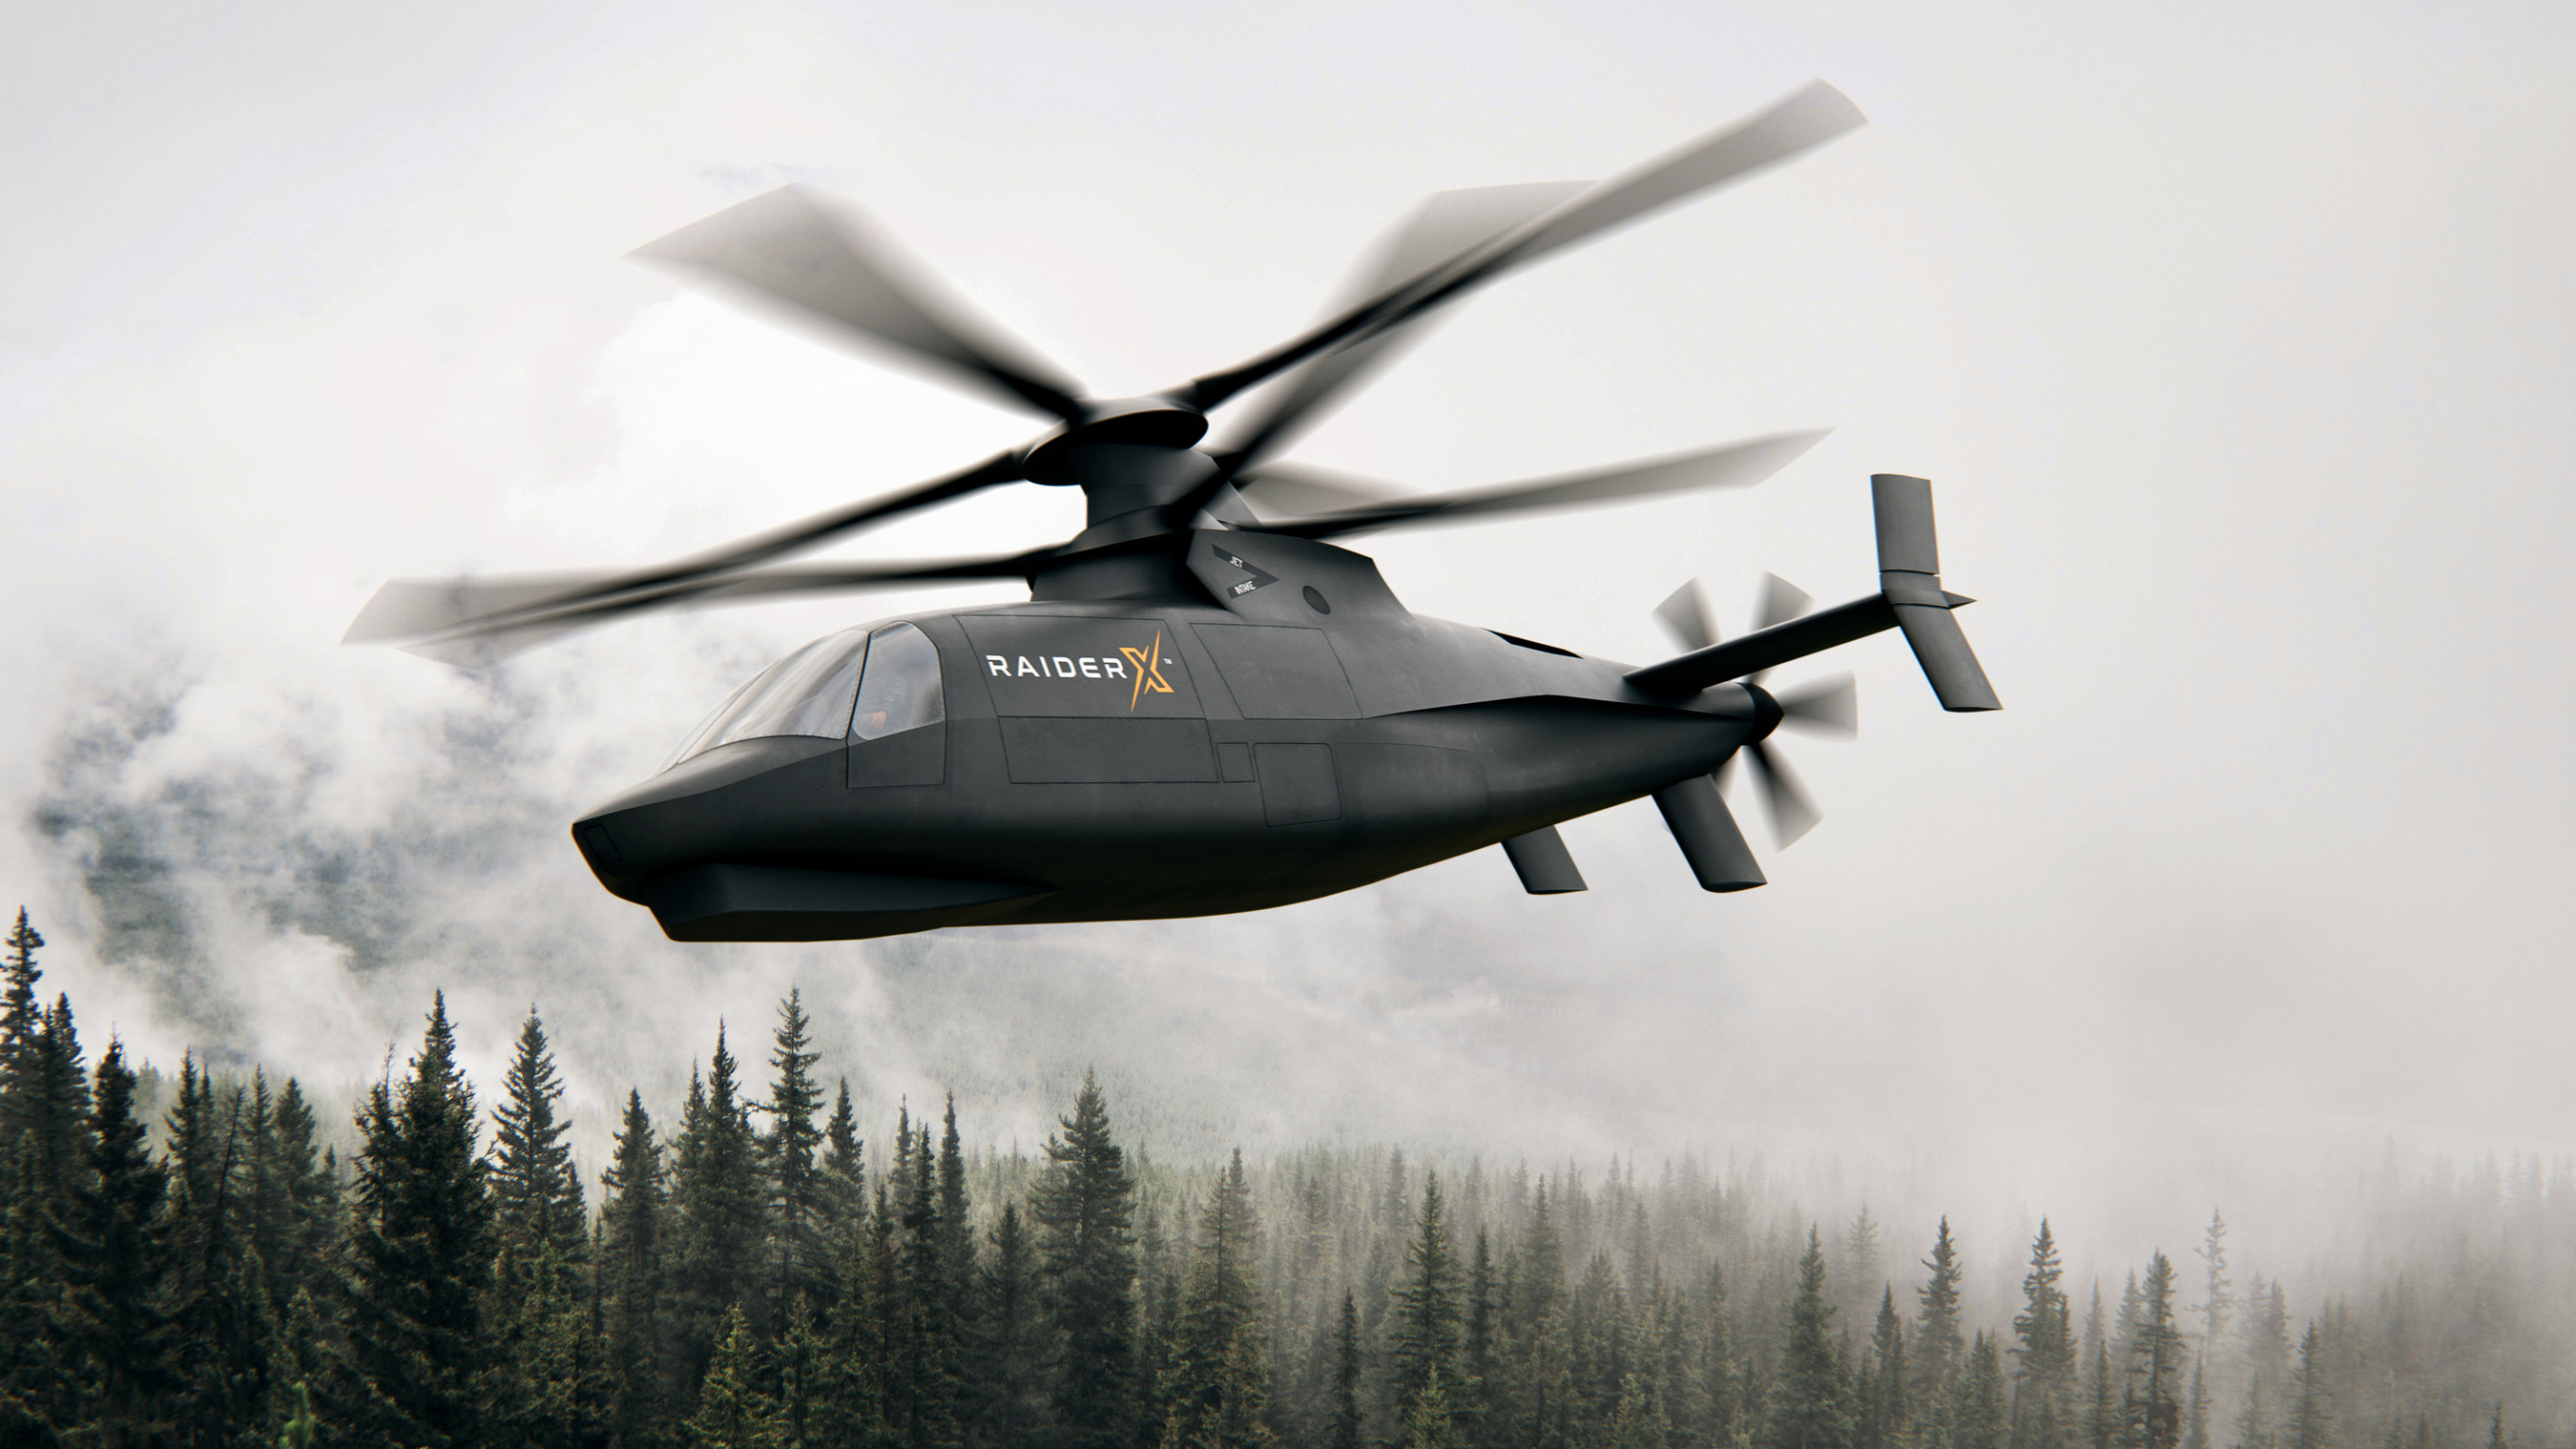 Sikorsky Introduces RAIDER X™, A NextGen Light-Attack Reconnaissance Helicopter Based On Its Proven X2 Technology